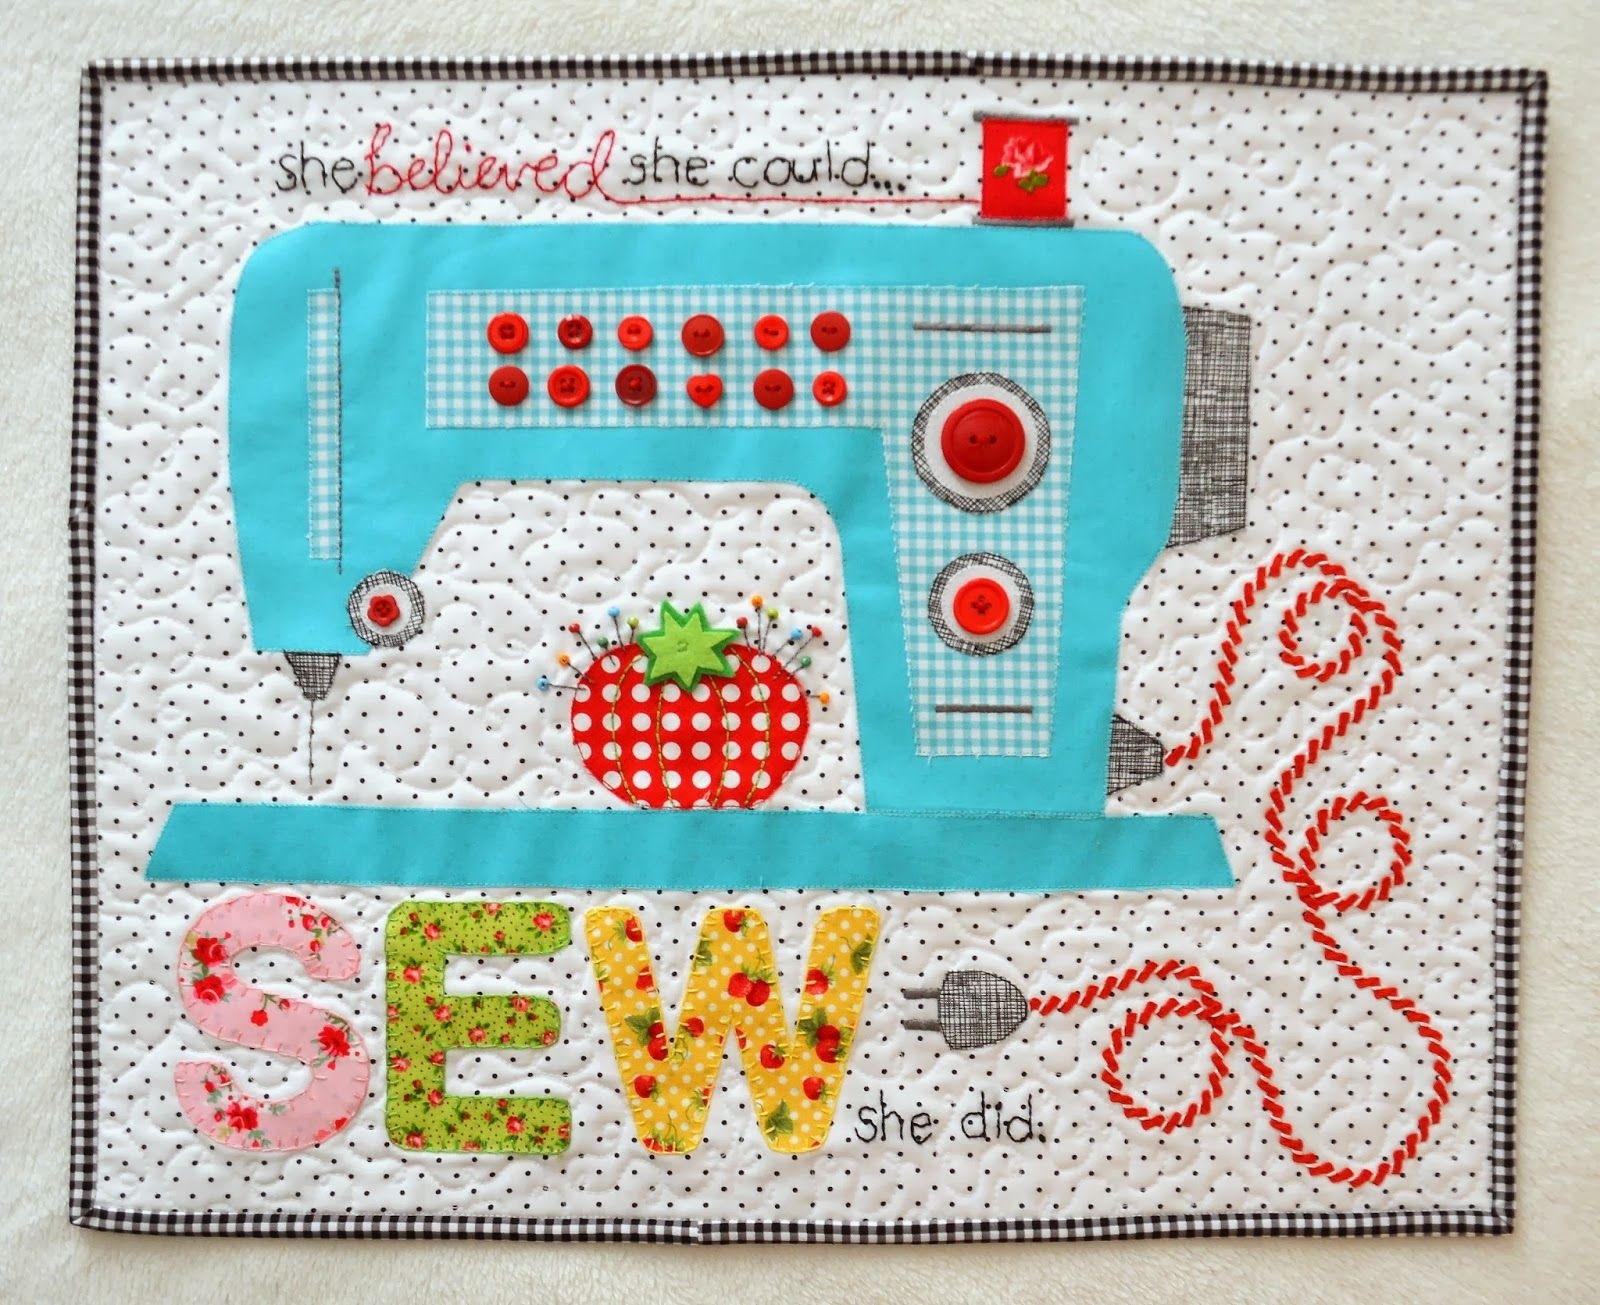 PATTERN Sewing Goodies cute applique sewing accessories PATTERN